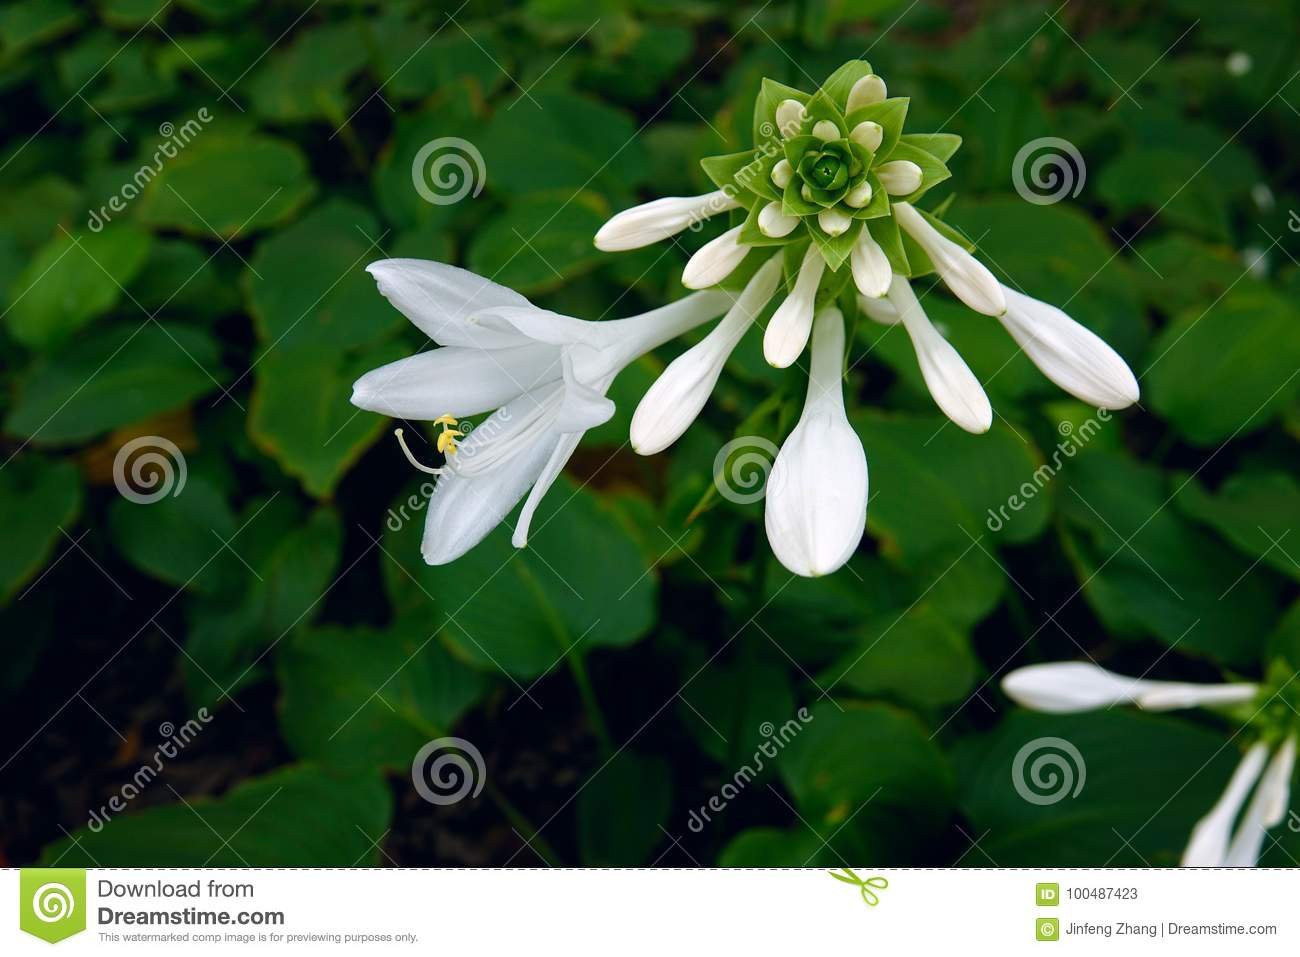 Fragrant plantain lily stock image image of liliaceae 100487423 fragrant plantain lily izmirmasajfo